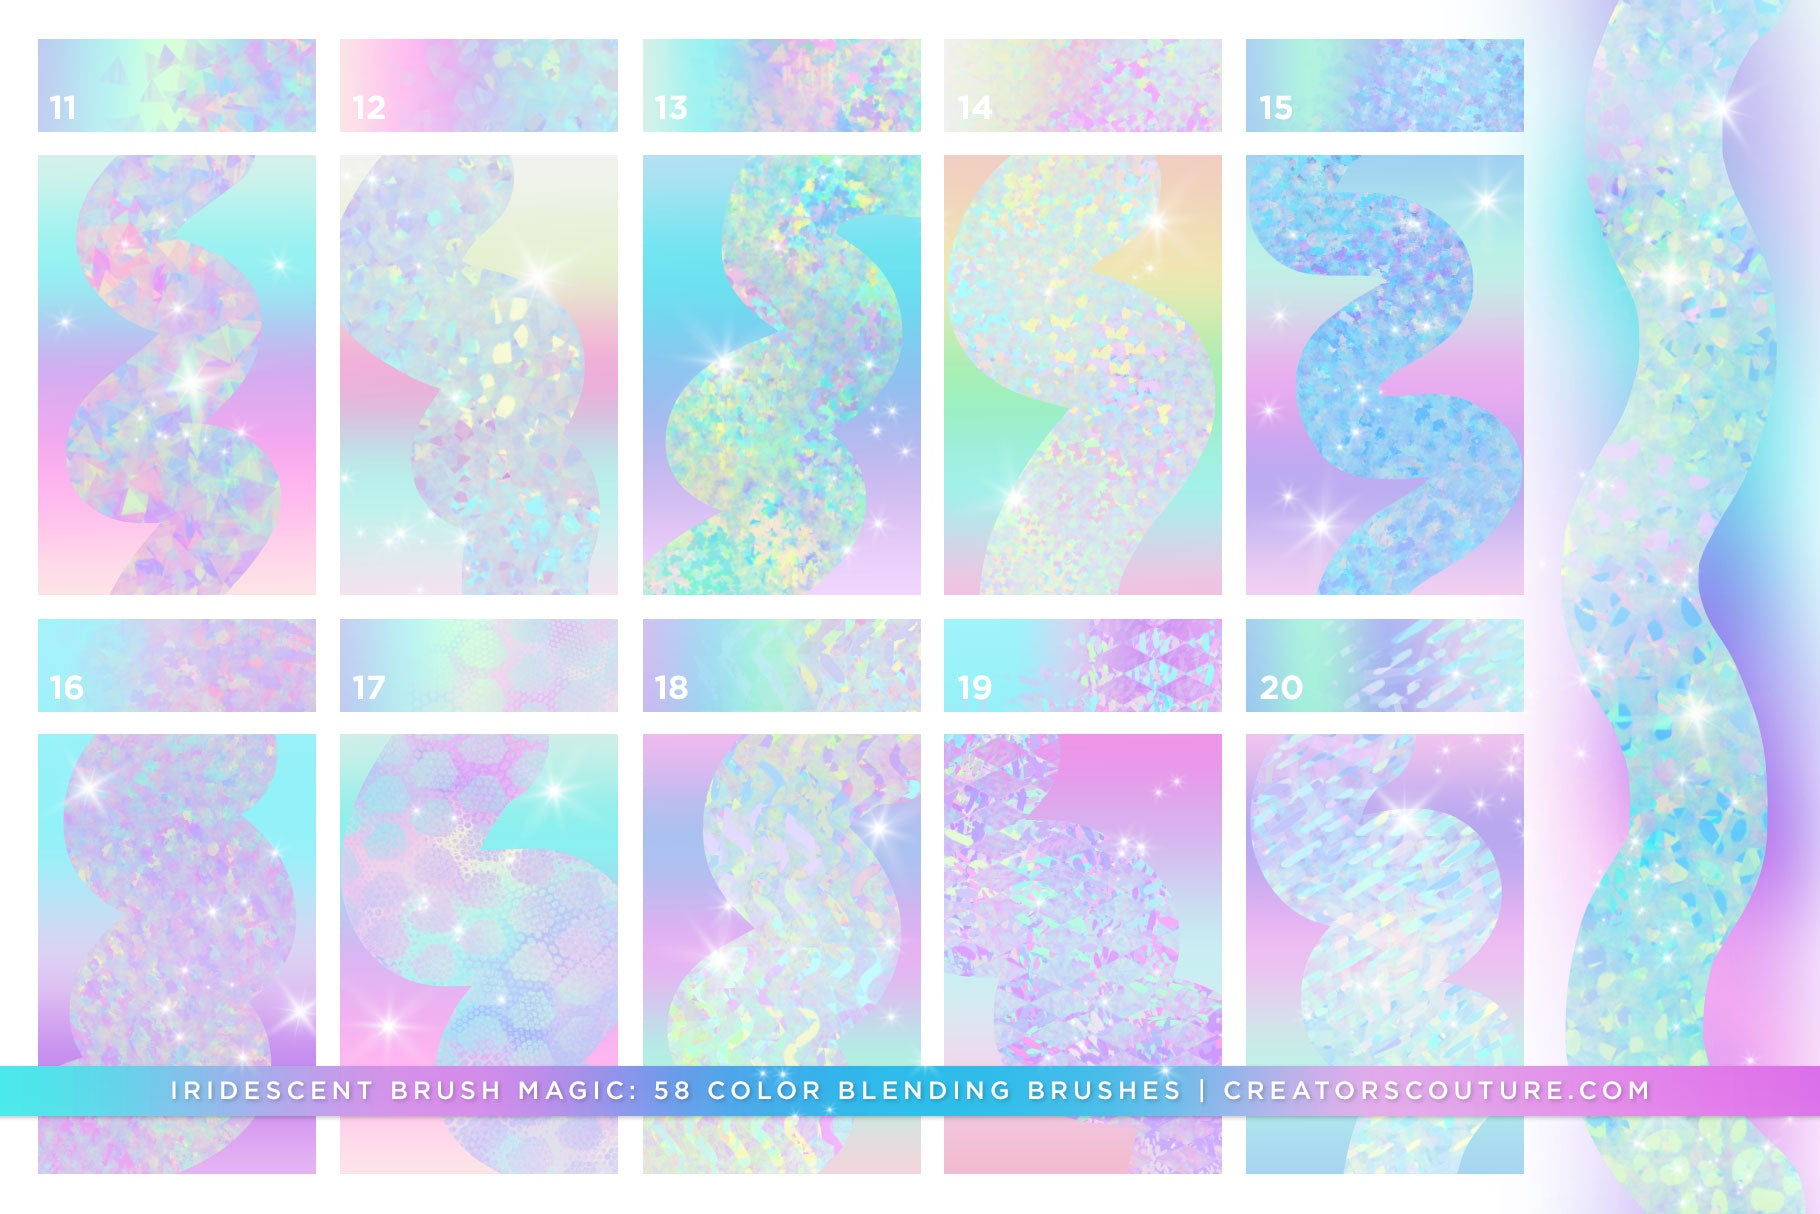 Iridescent & Holographic Photoshop Brushes, Color Palettes, & Effects brush preview 3